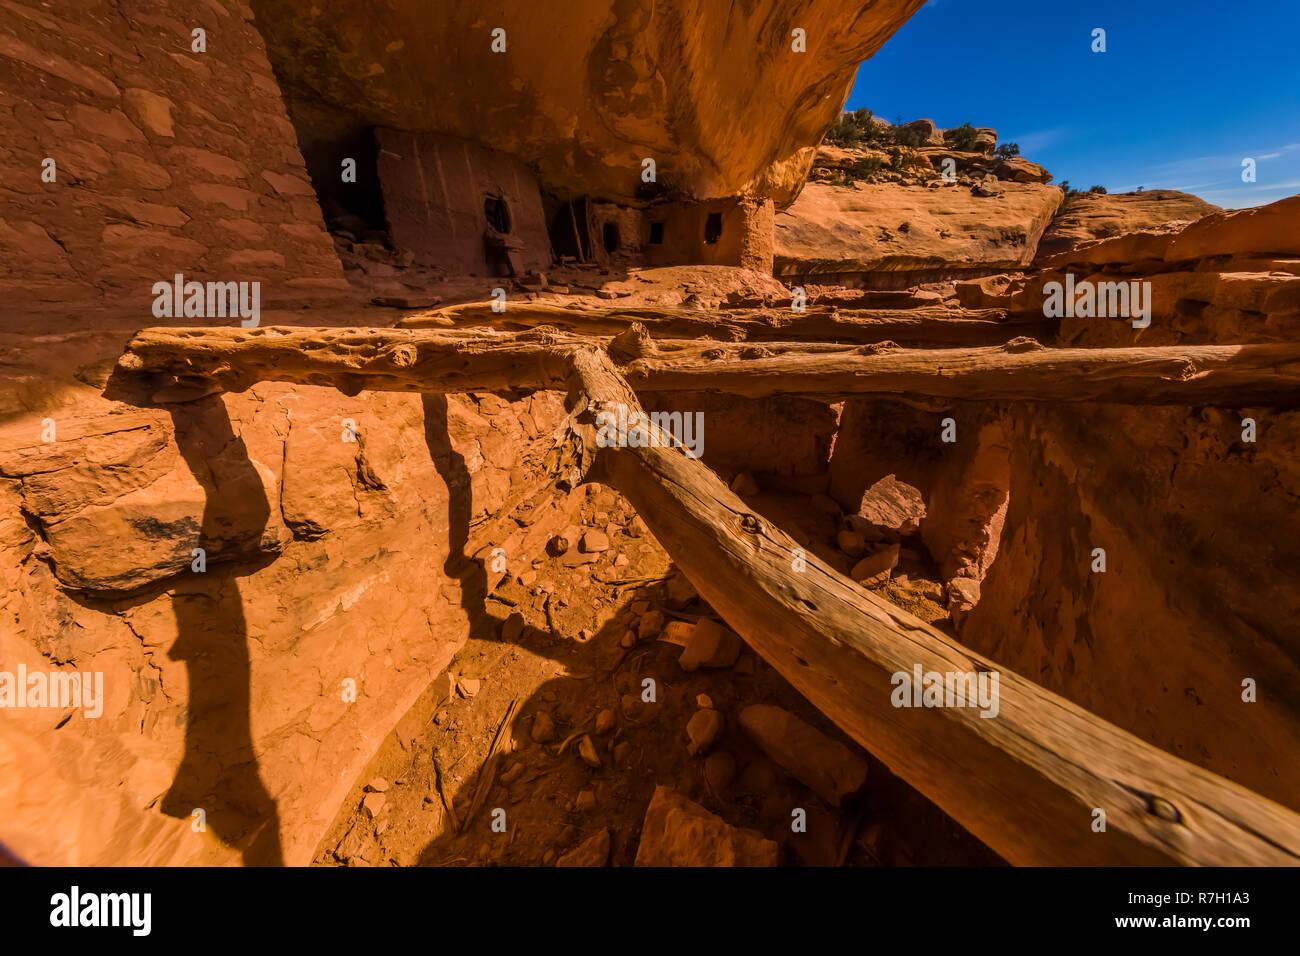 Collapsed roof over rooms in Moon House Ruin on Cedar Mesa, created by the Ancestral Puebloan People and once part of Bears Ears National Monument, Ut - Stock Image